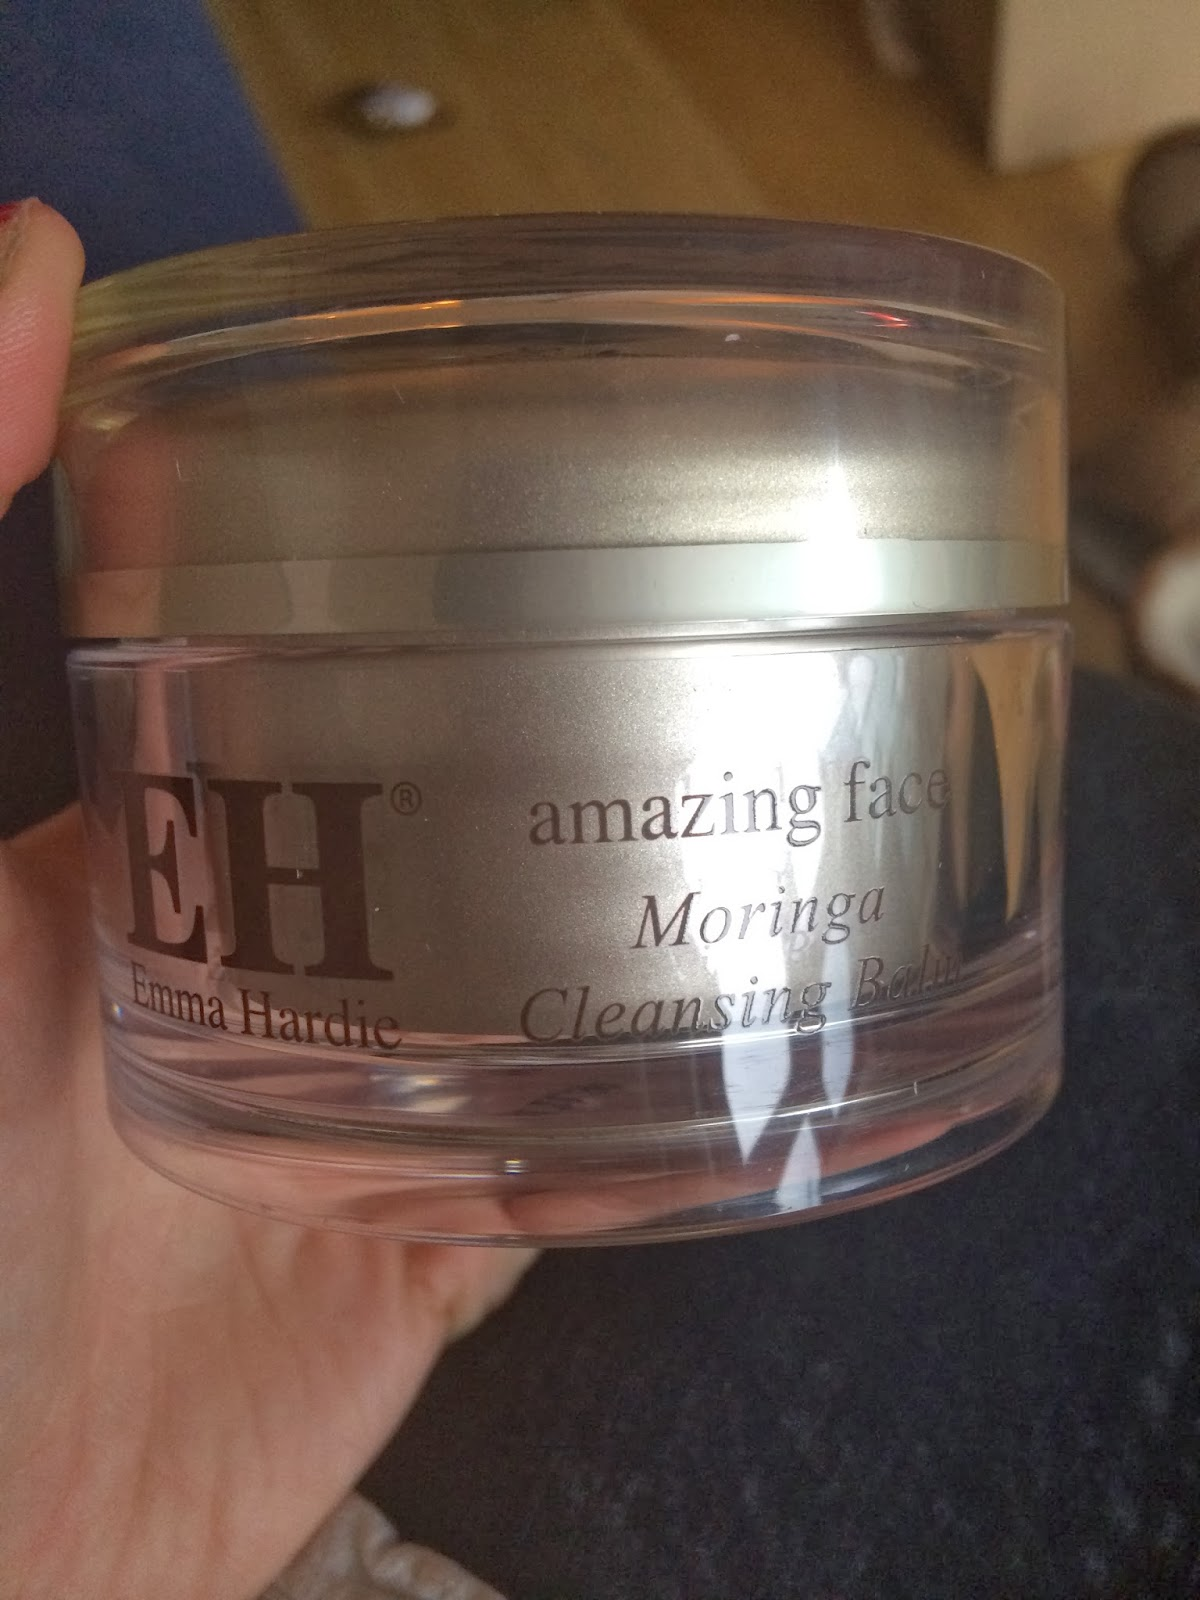 Emma Hardie Amazing Face Moringa Cleansing Balm Review